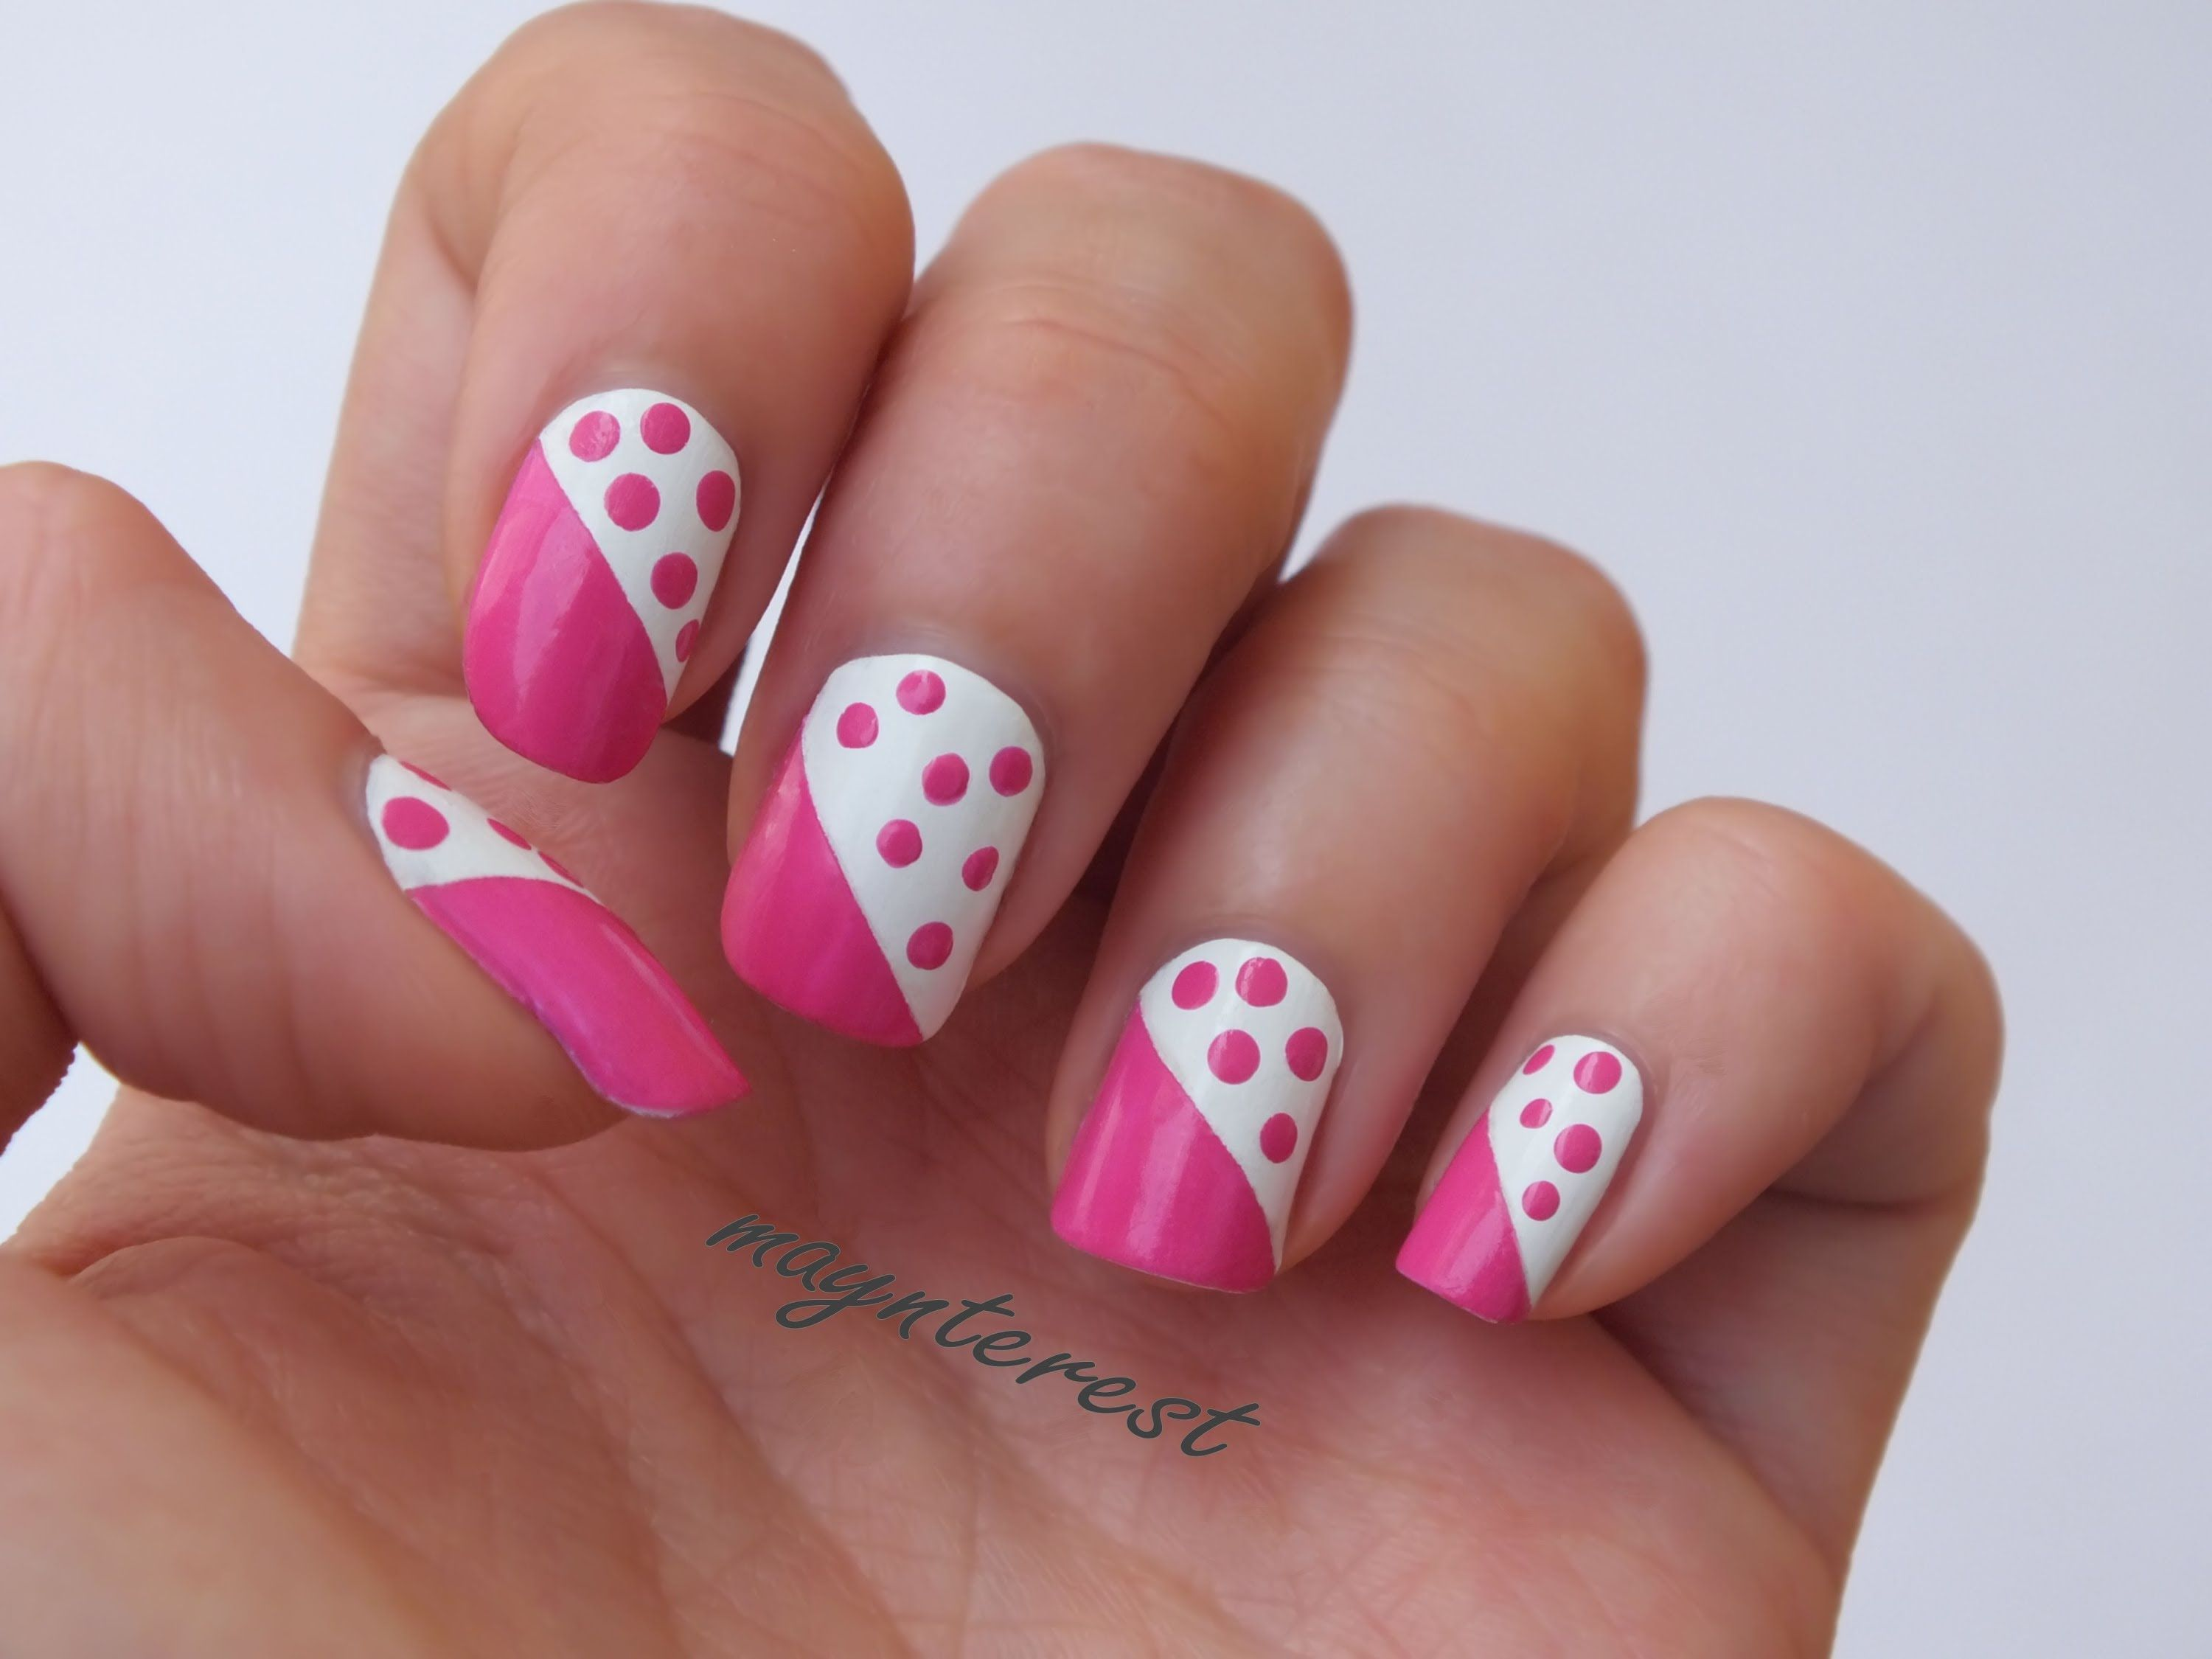 Dise o de u as con puntos dots nail art u as for Decoracion de unas facil en casa